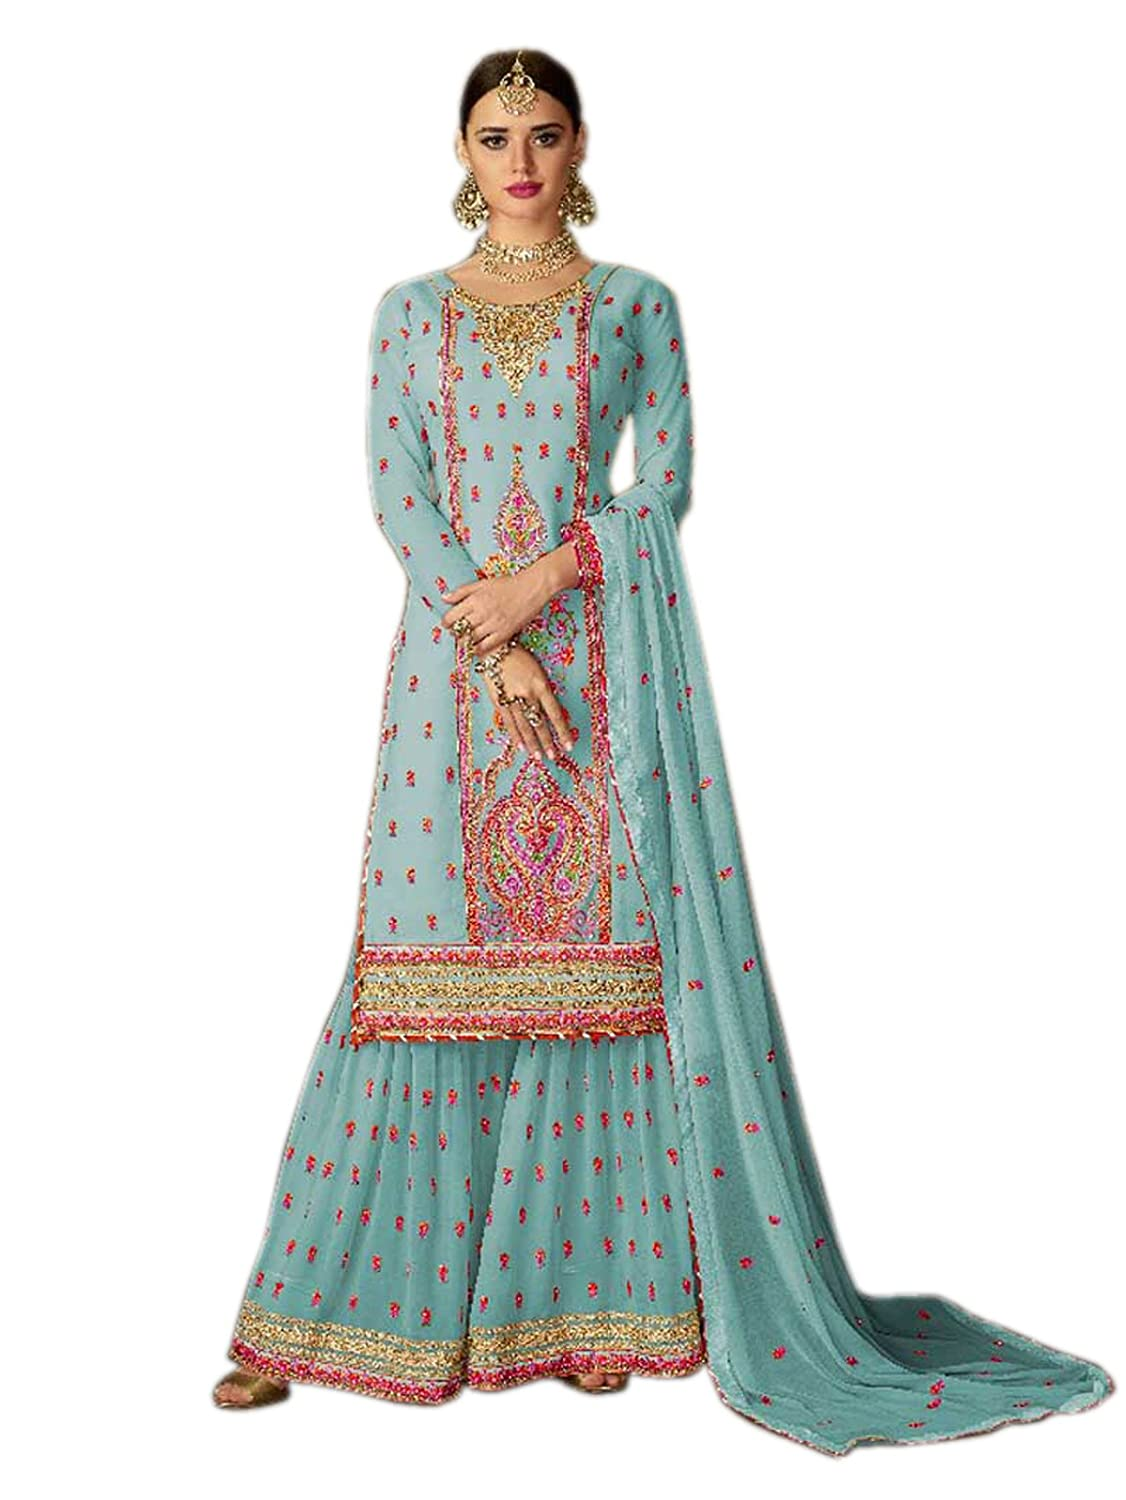 Buy Shoppingover New Collection Party Wear Designer Salwar Kameez For Women Punjabi Suit Blue Color At Amazon In